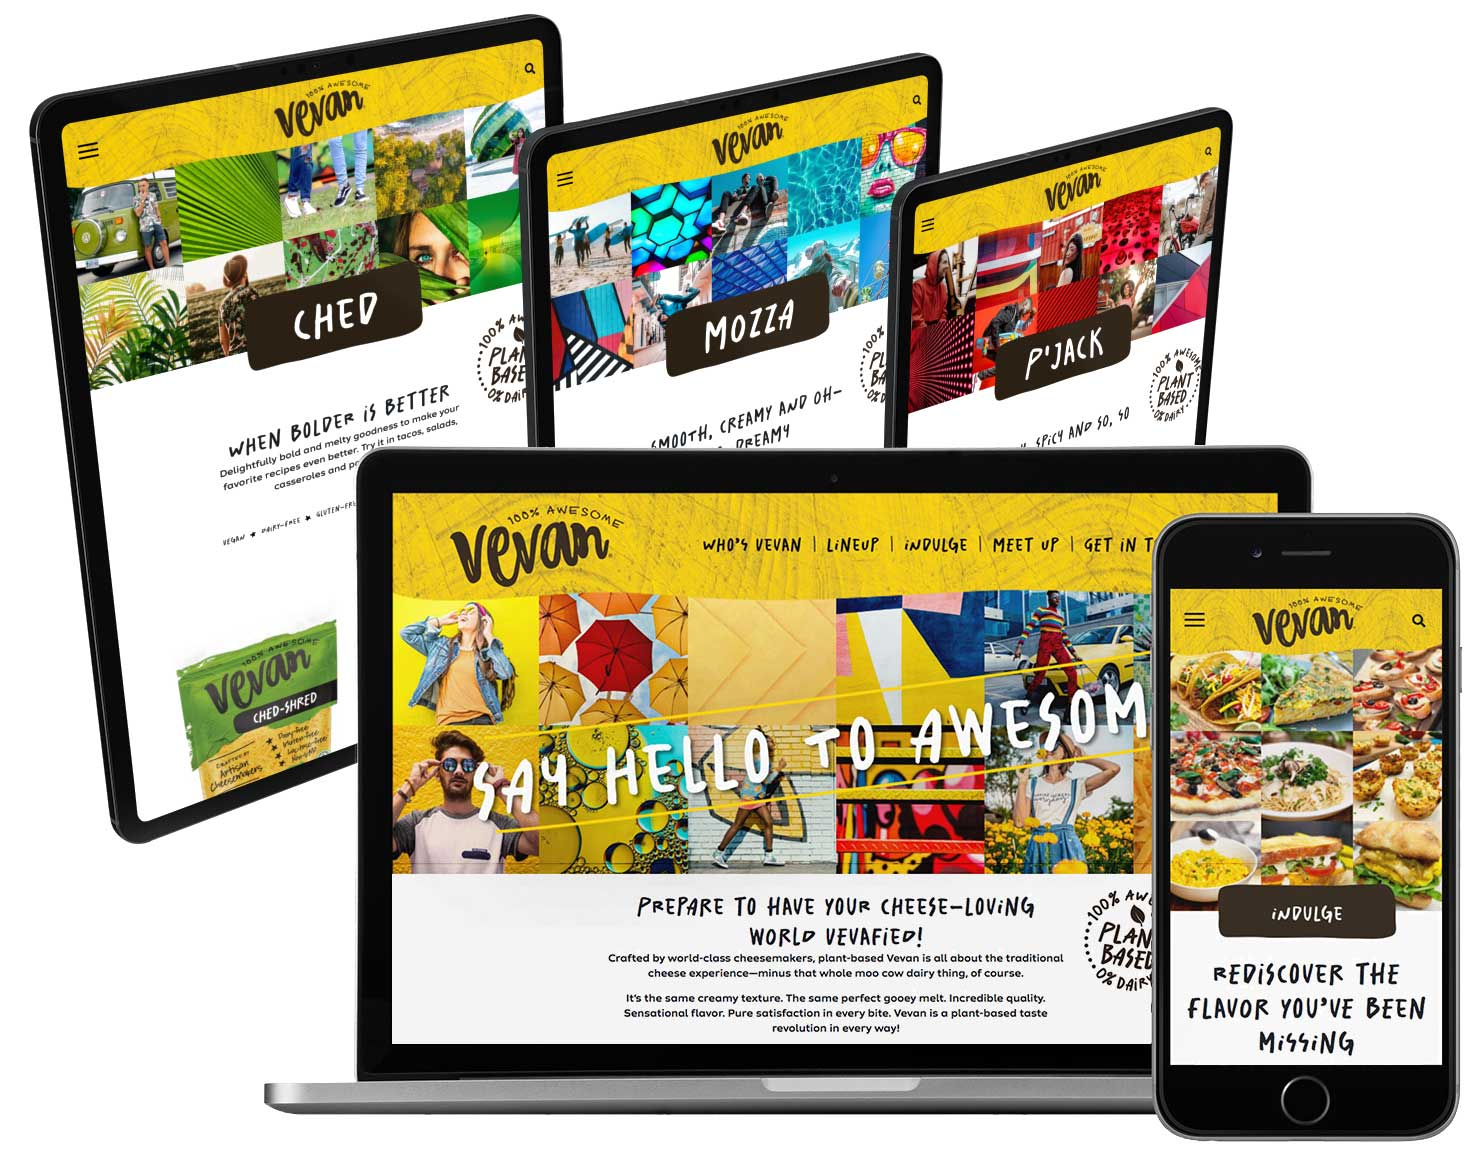 Vevan Foods Cheese Product Website Design